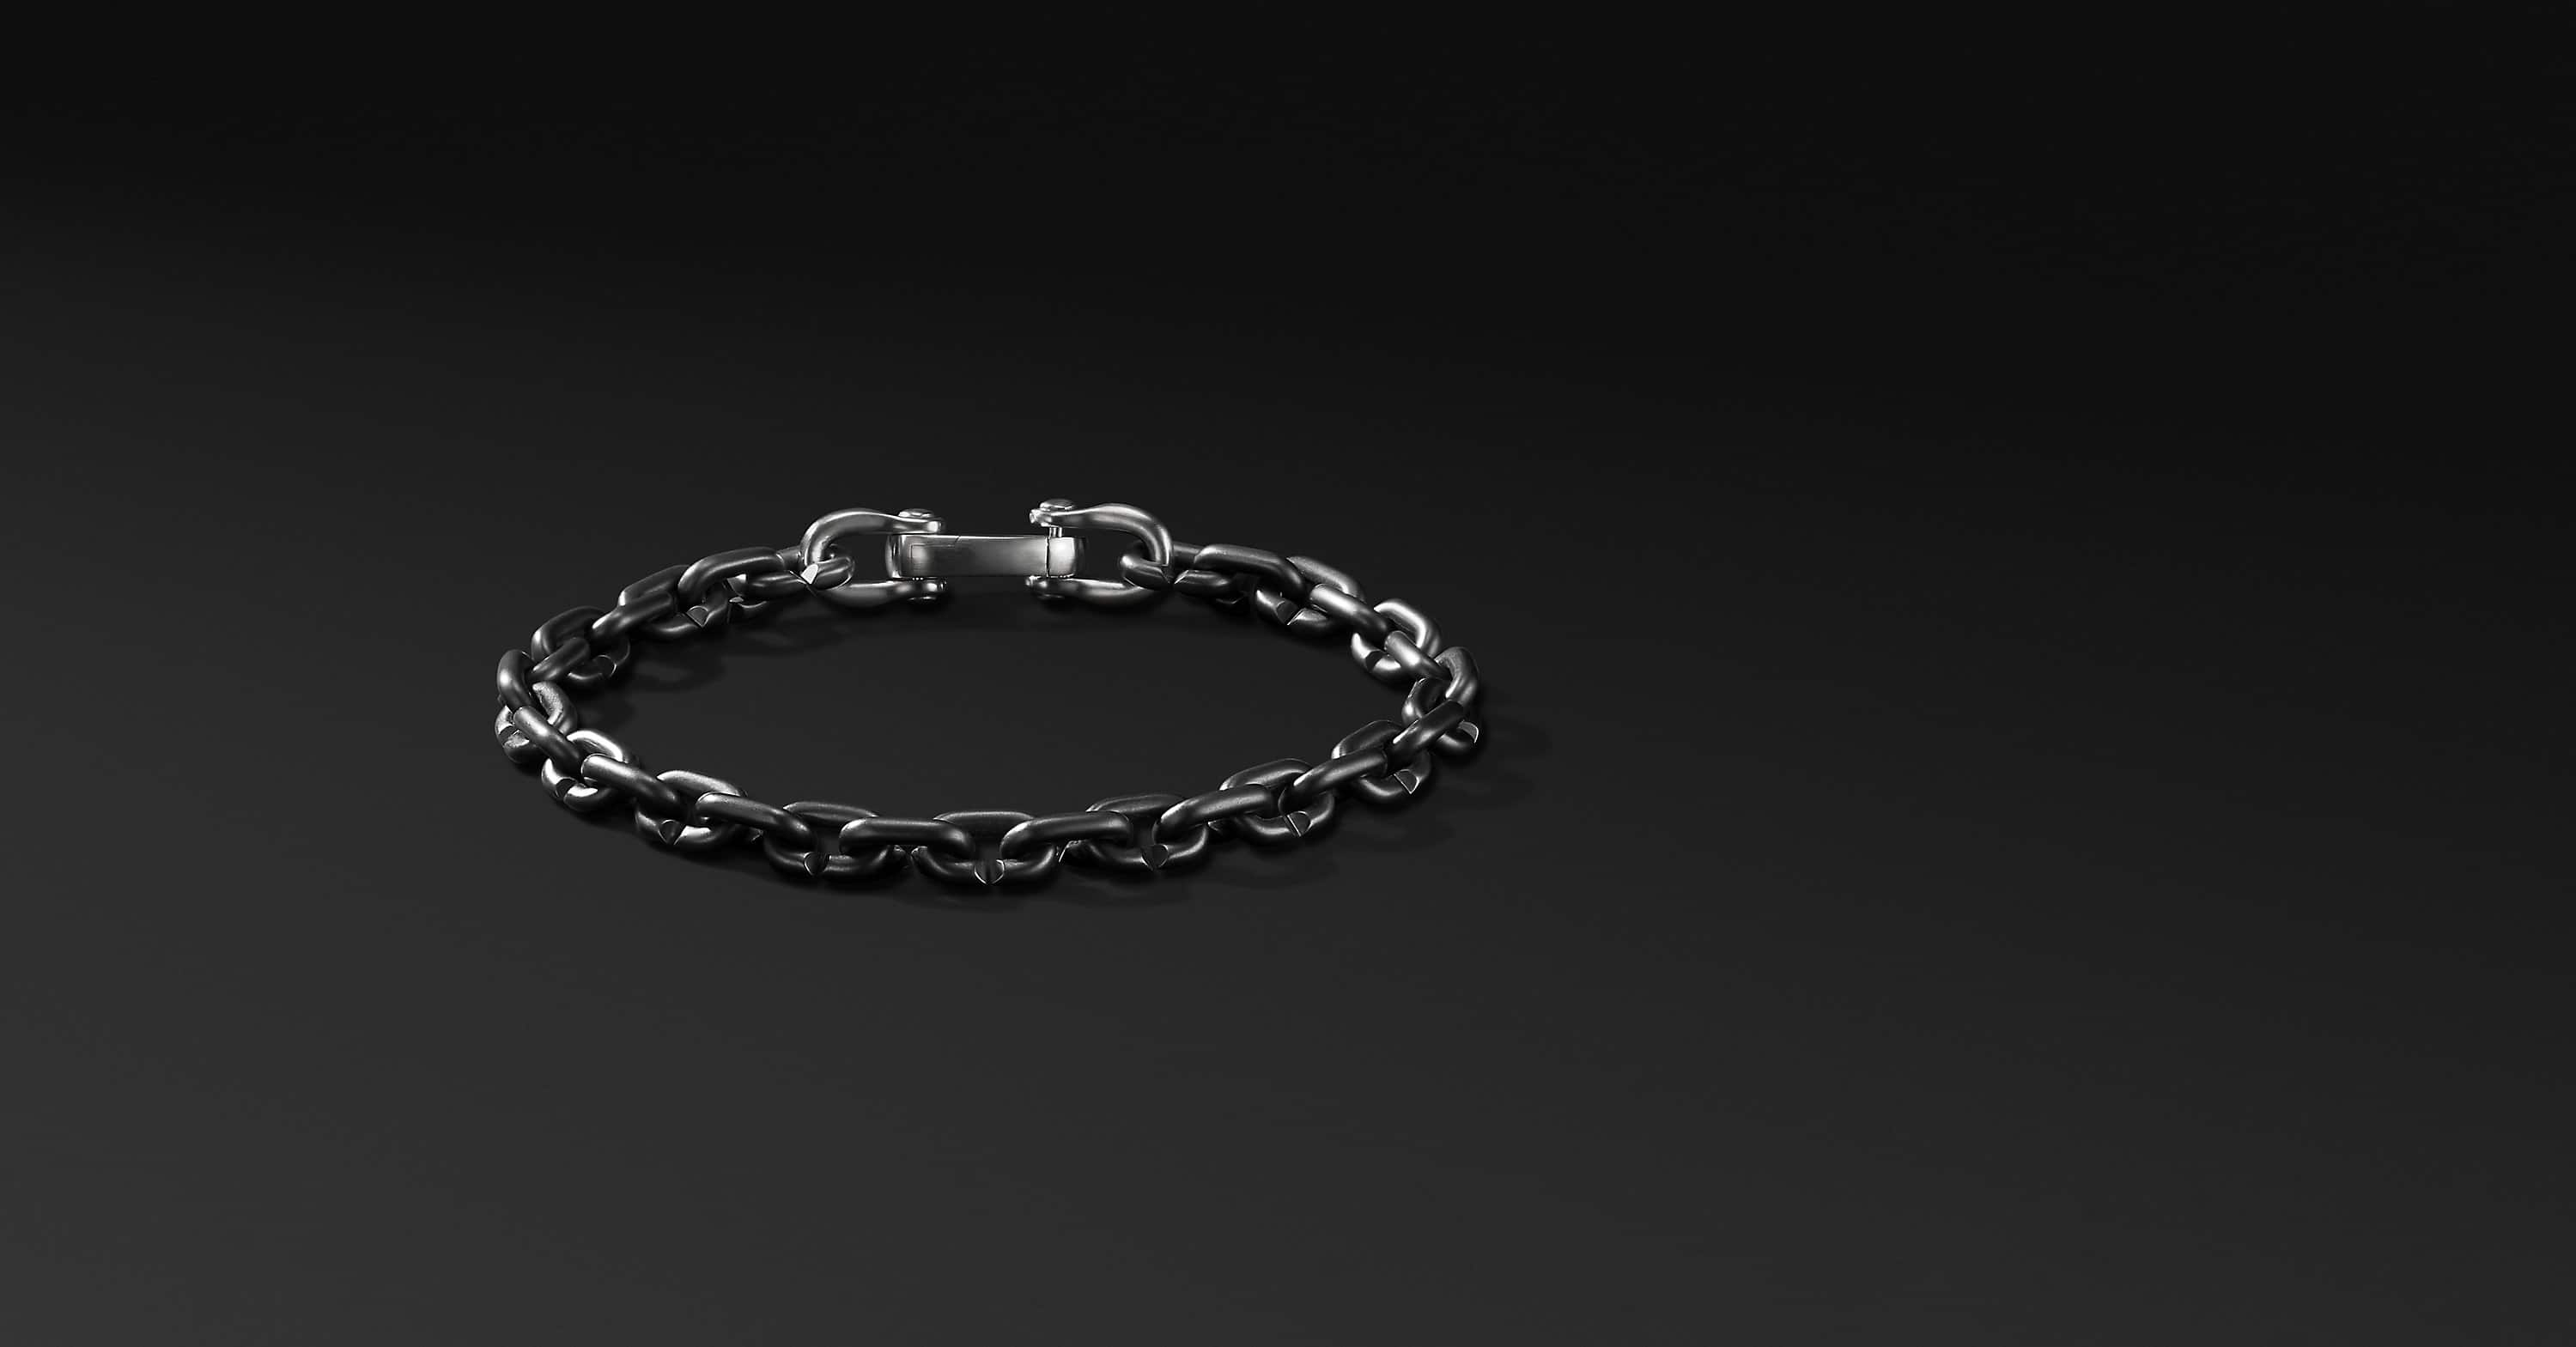 Chain Link Narrow Bracelet with Black Titanium